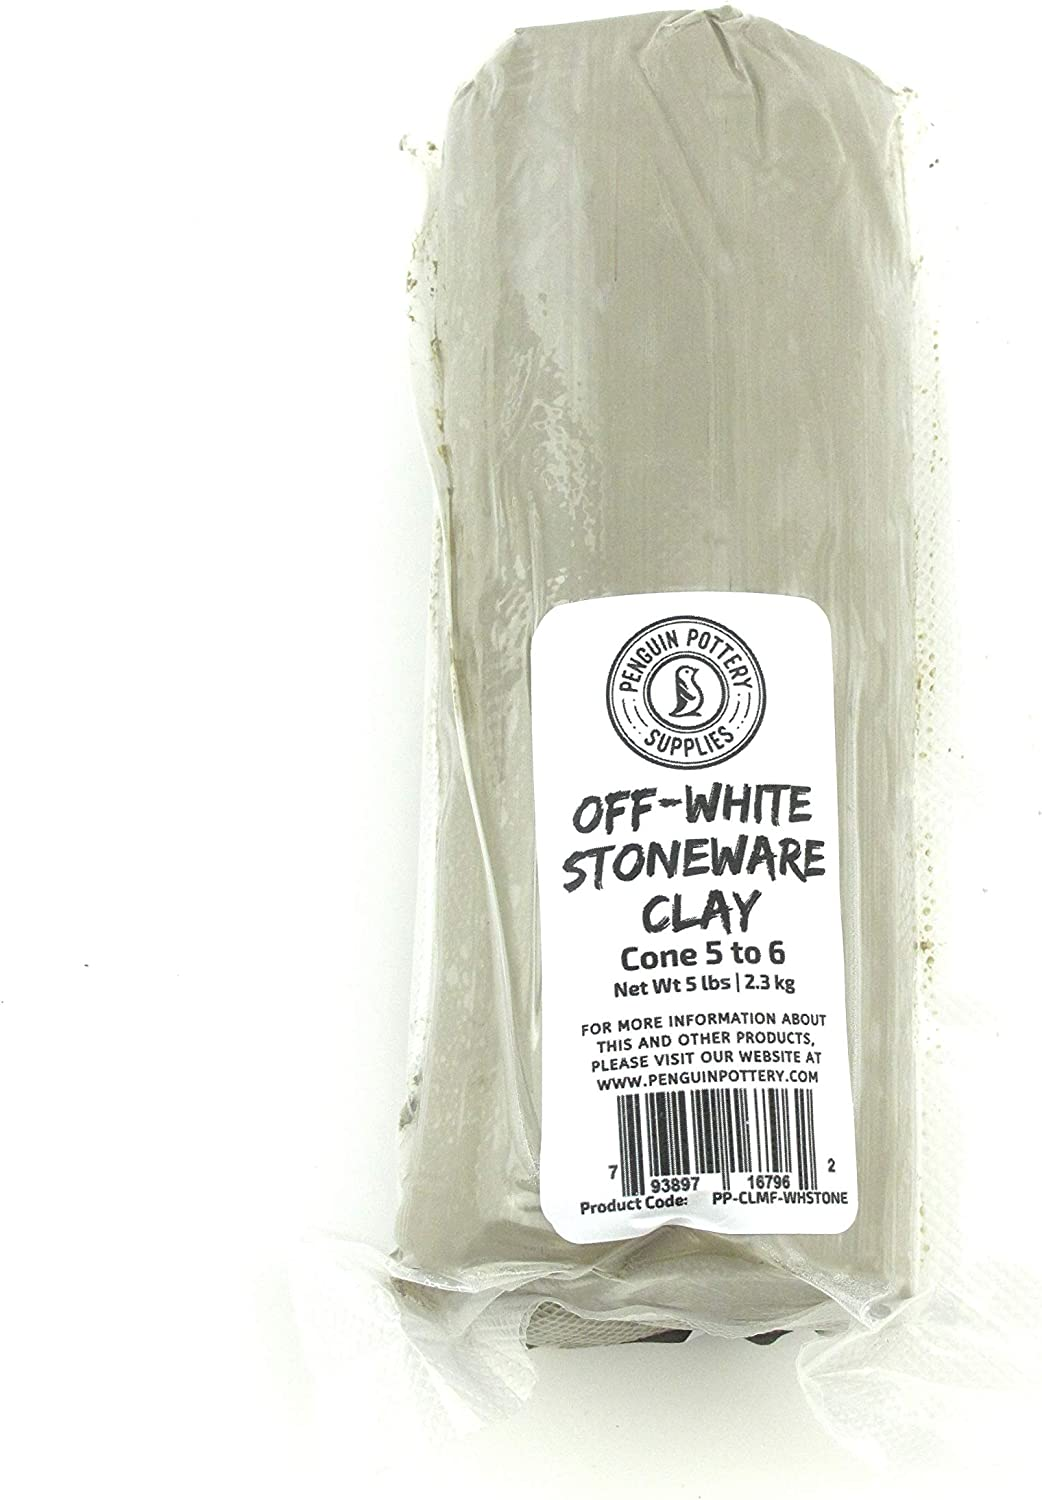 Penguin Pottery - Off-White Stoneware Wet Clay - Mid Fire - Cone 5 to 6-5 lbs - Vacuum Sealed for Freshness